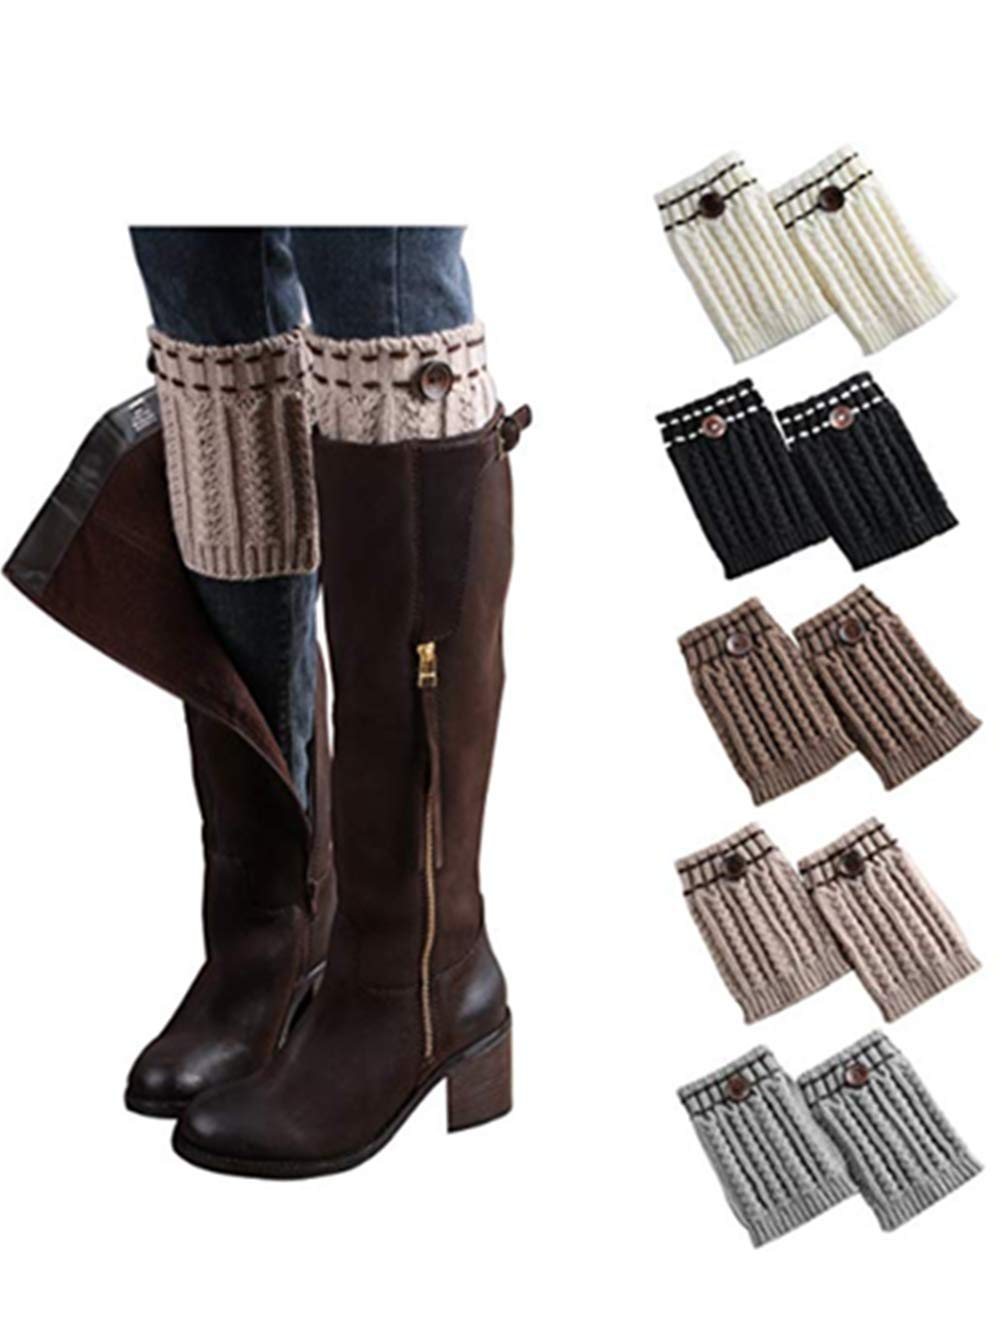 LIWEIKE Womens Short Boots Socks Crochet Knitted Boot Cuffs Leg Warmers Socks (5 Pairs-style B)